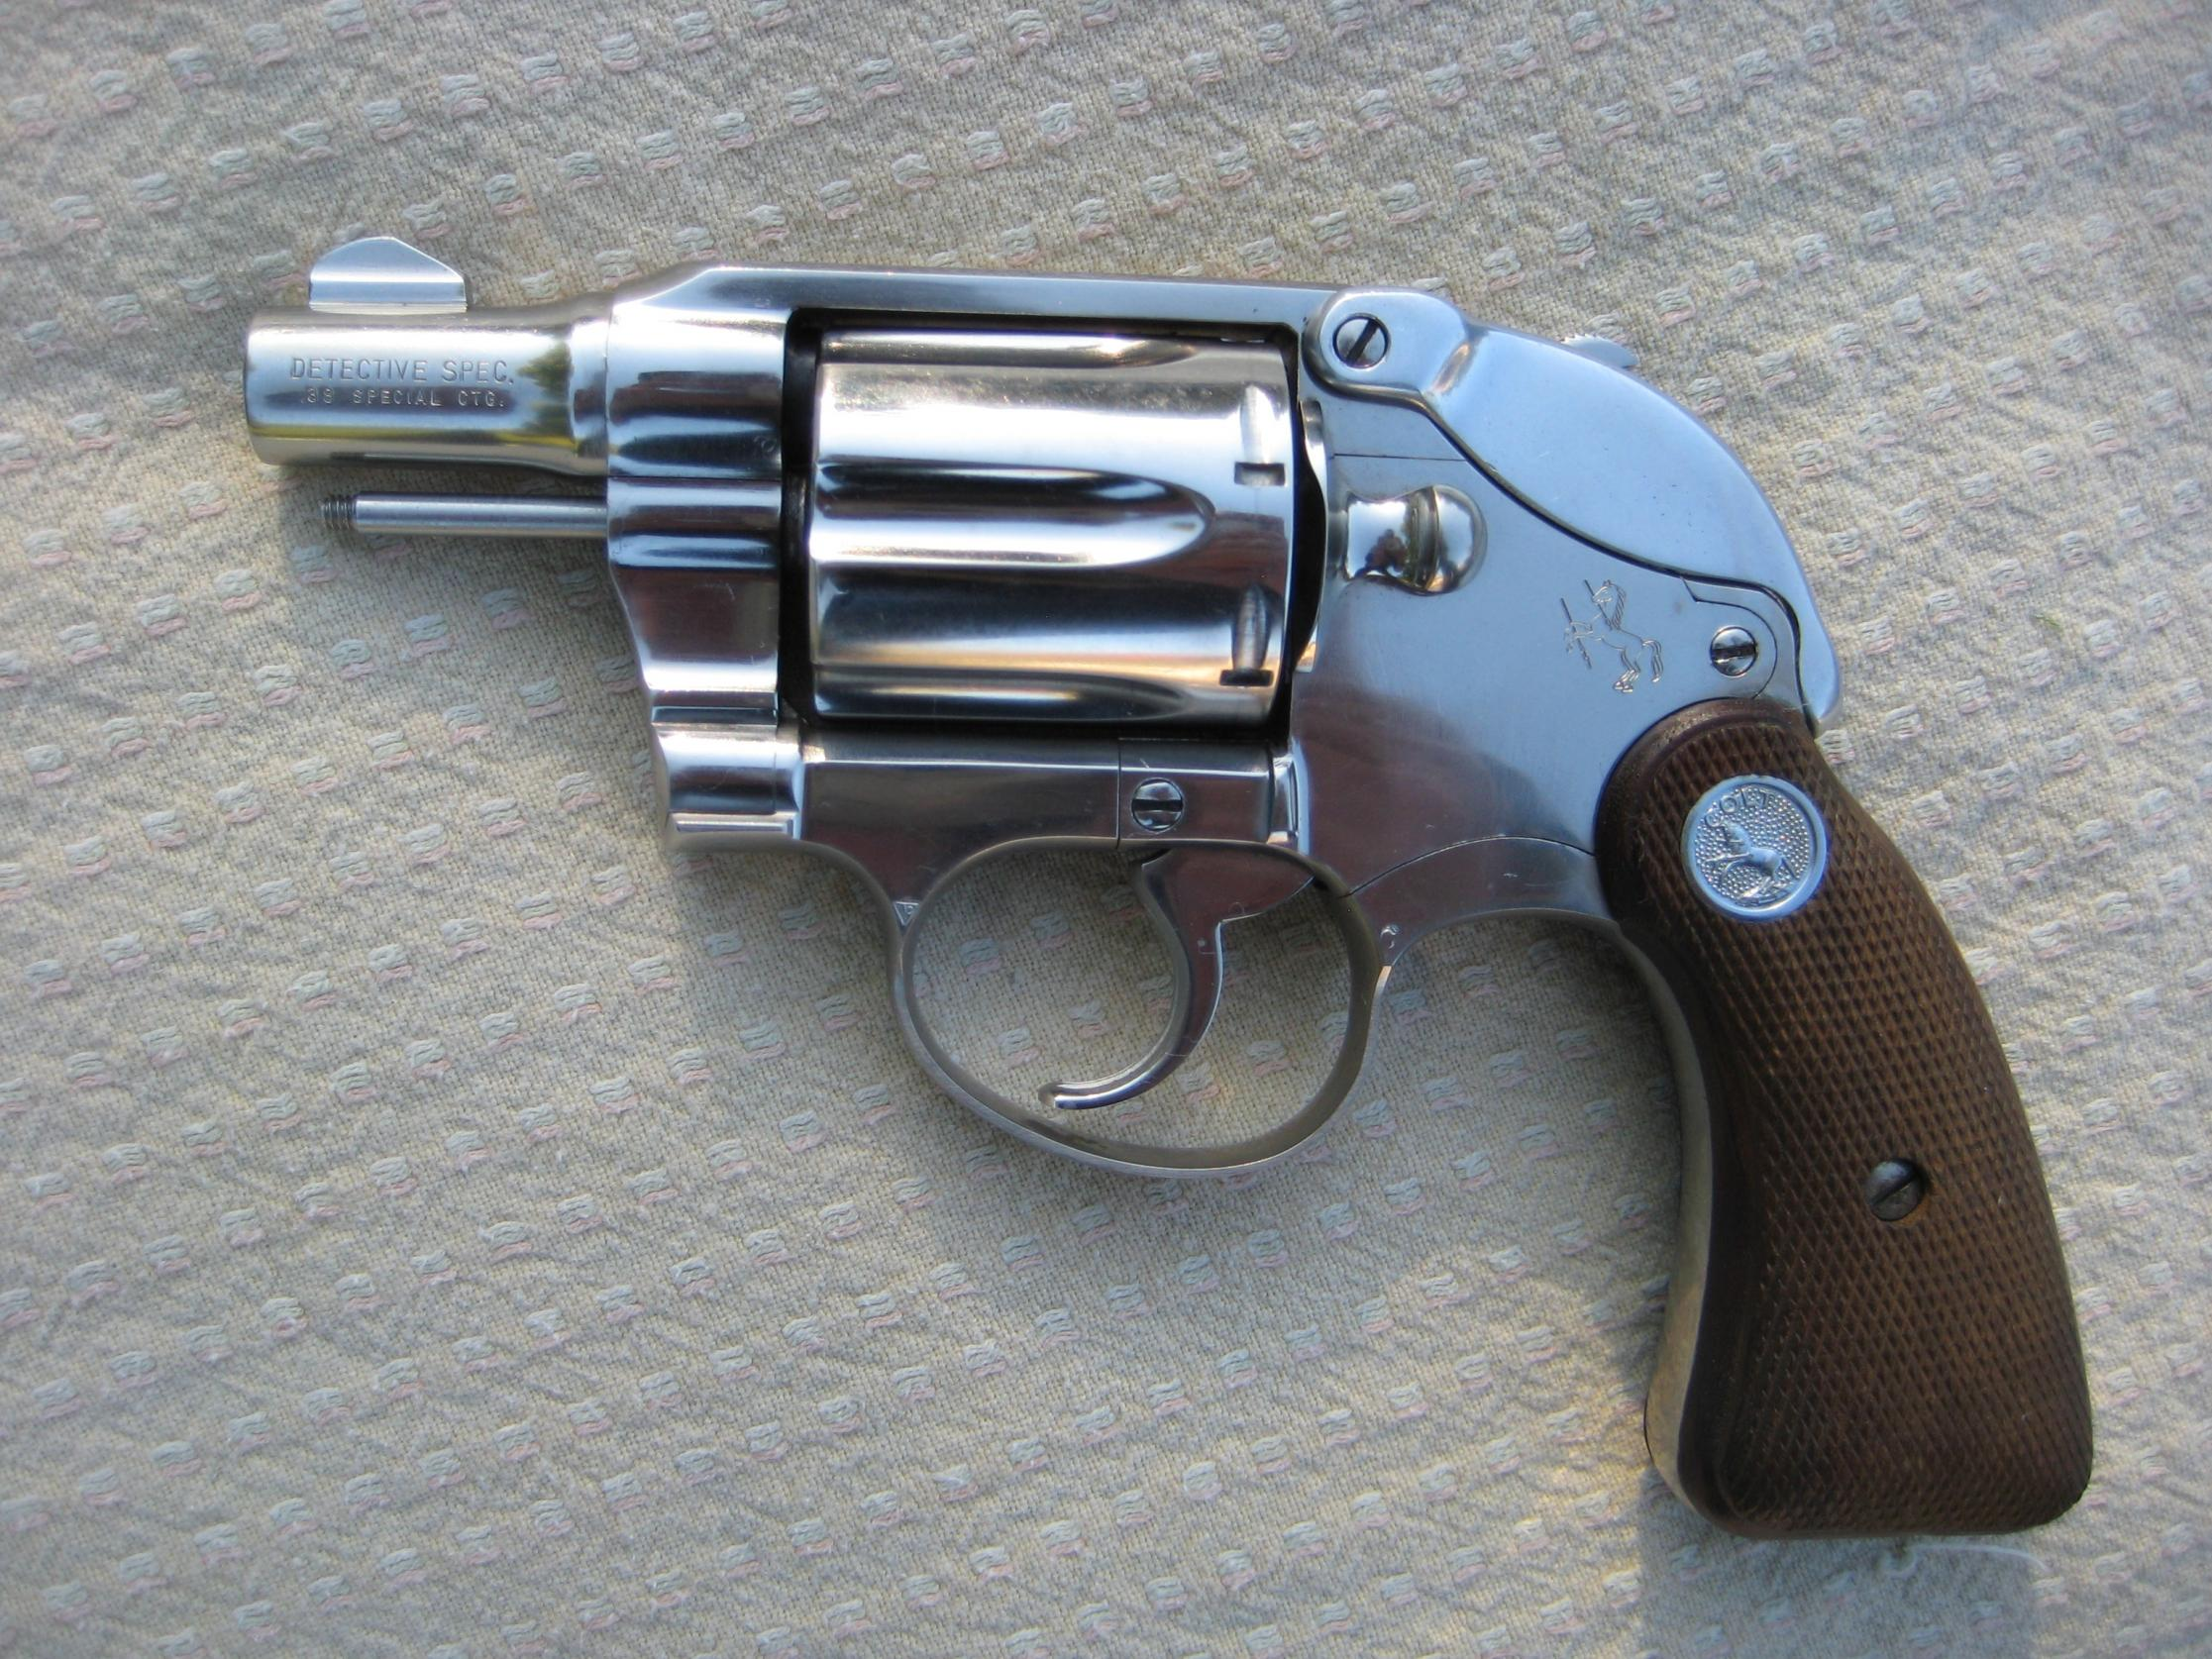 Colt Detective Special - timeless protection-099.jpg